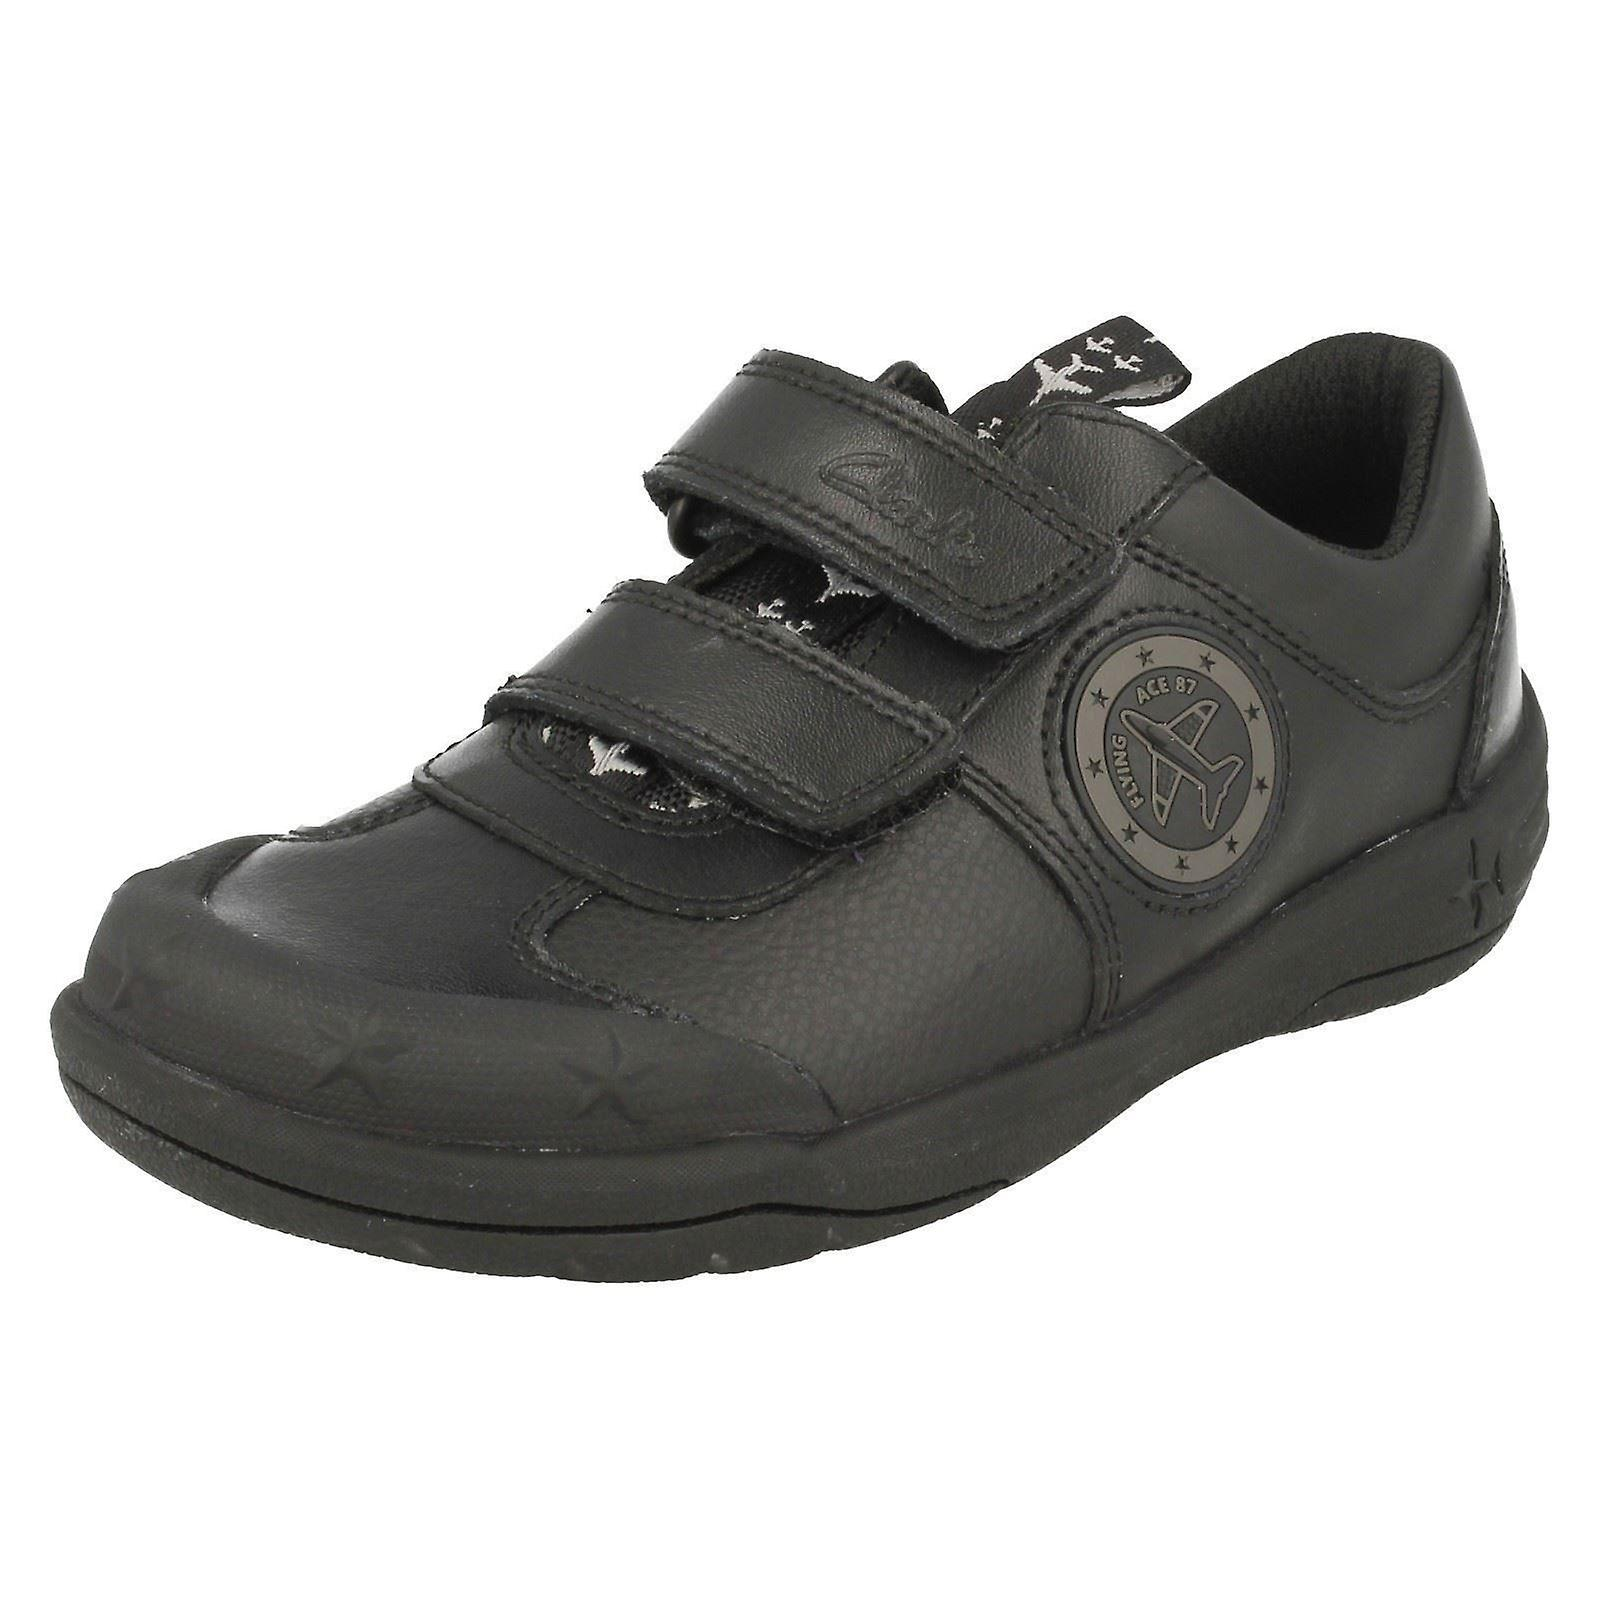 Boys Clarks School Shoes with Lights Jetsky Fun